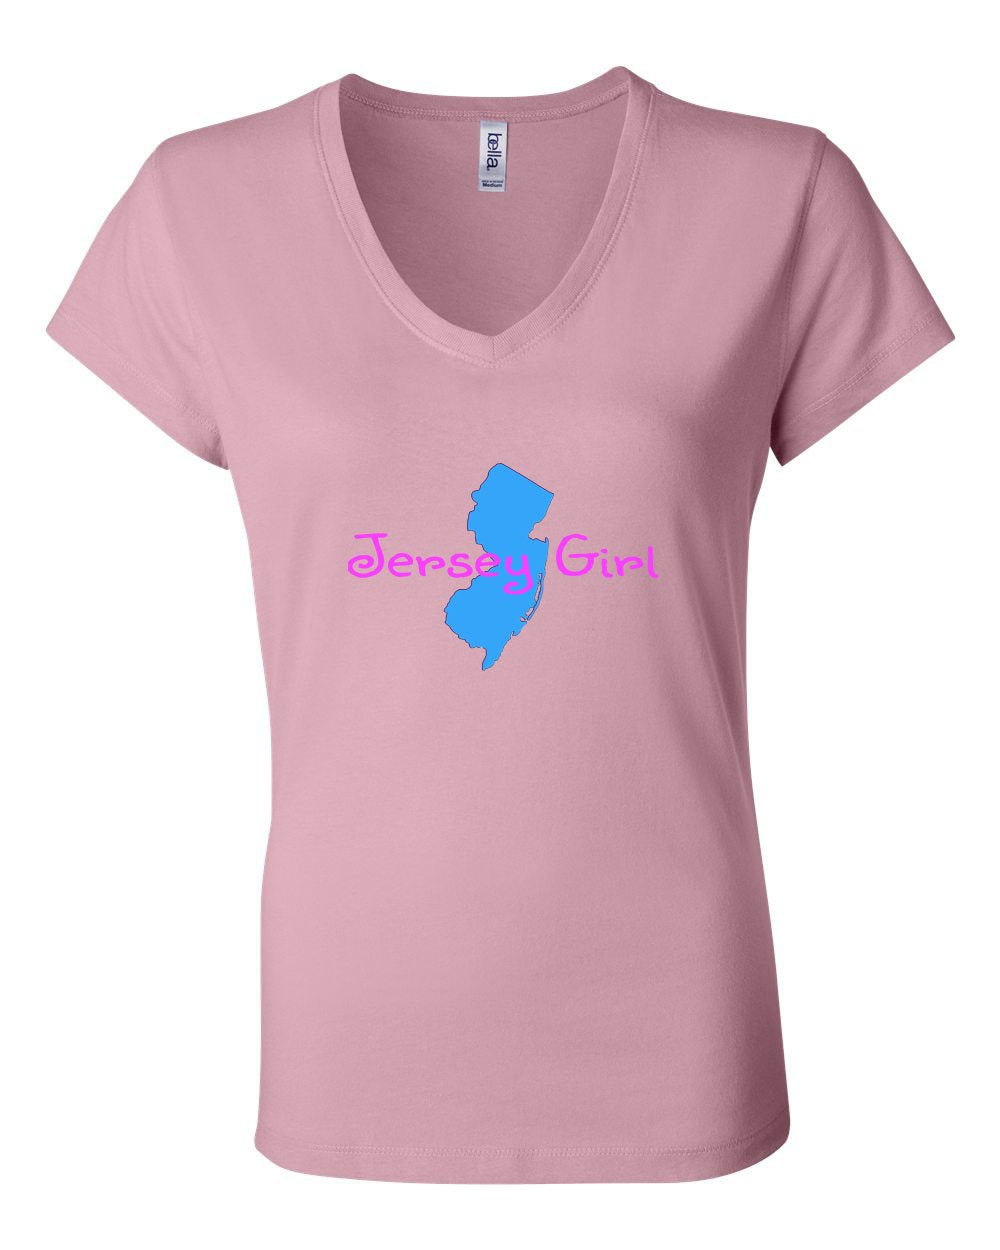 Jersey Girl LADIES Junior Fit V-Neck